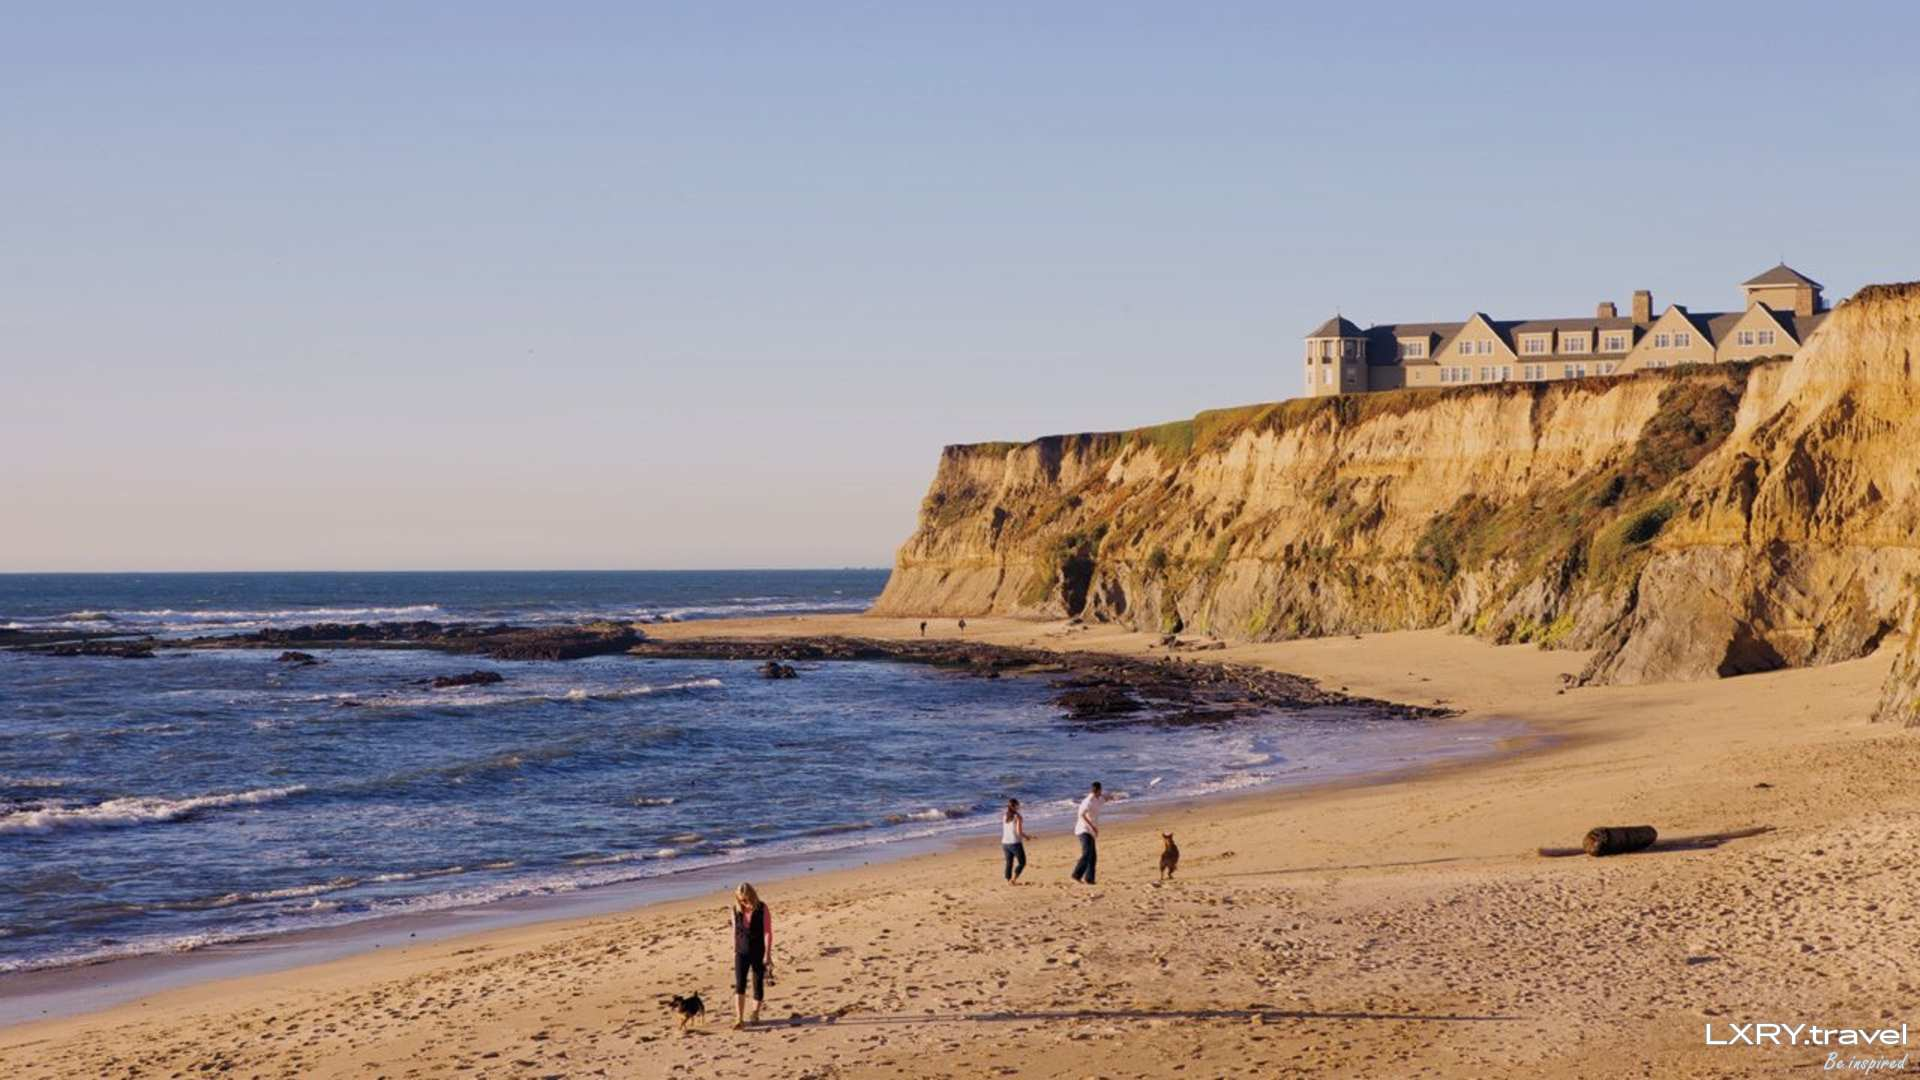 The Ritz-Carlton, Half Moon Bay 34/50